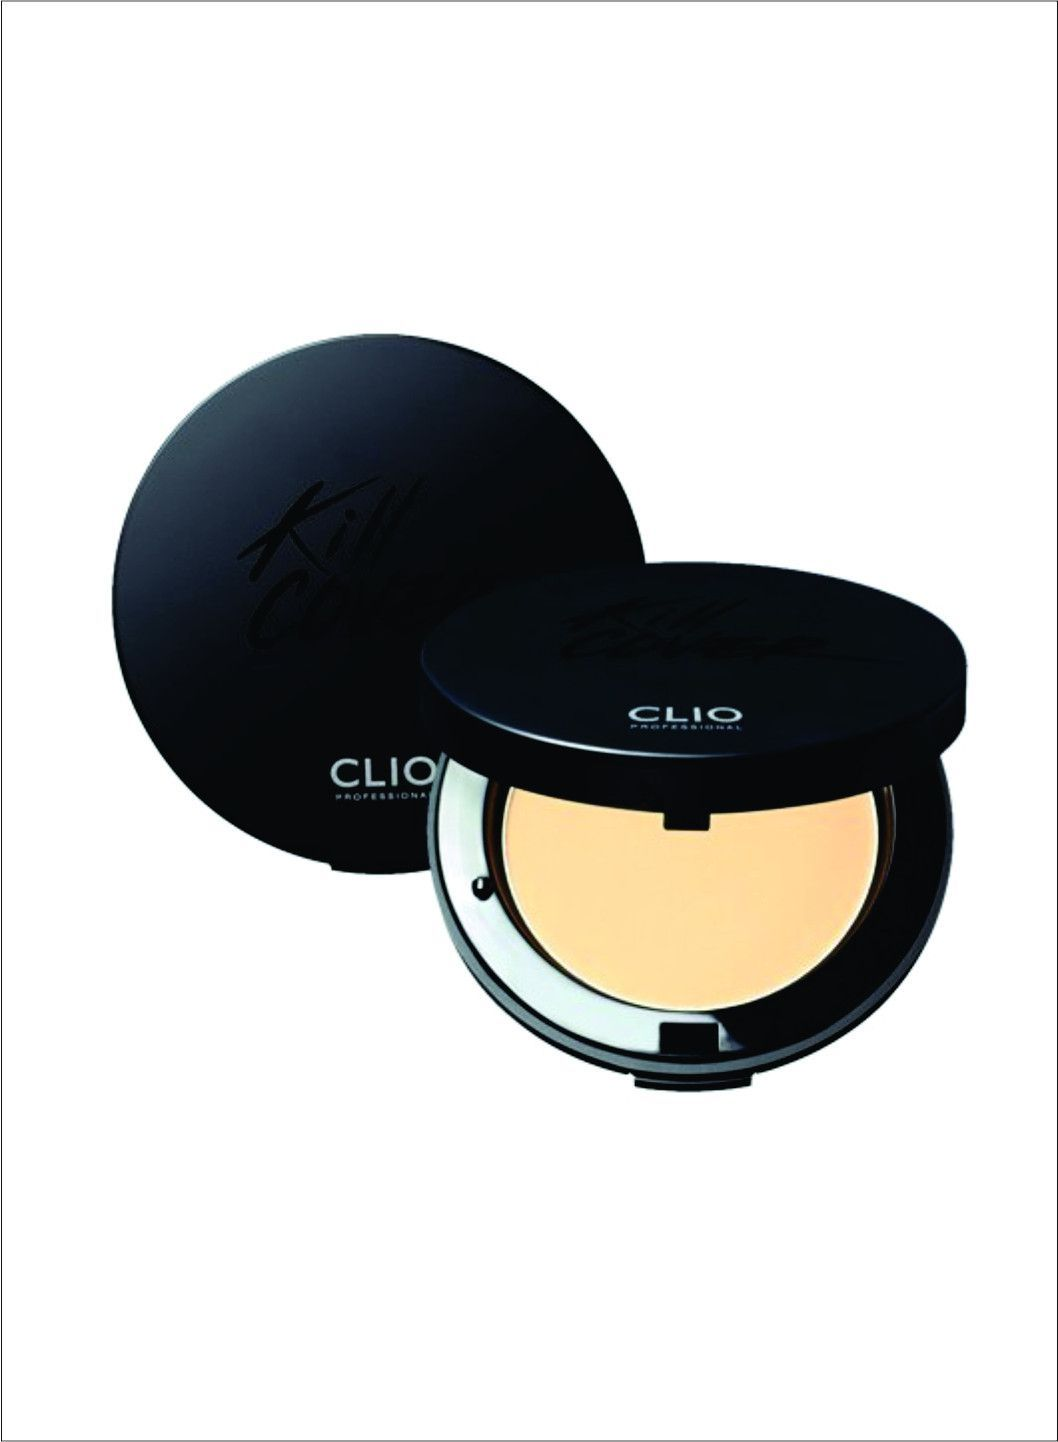 Clio Kill Cover Highest Wear Pact